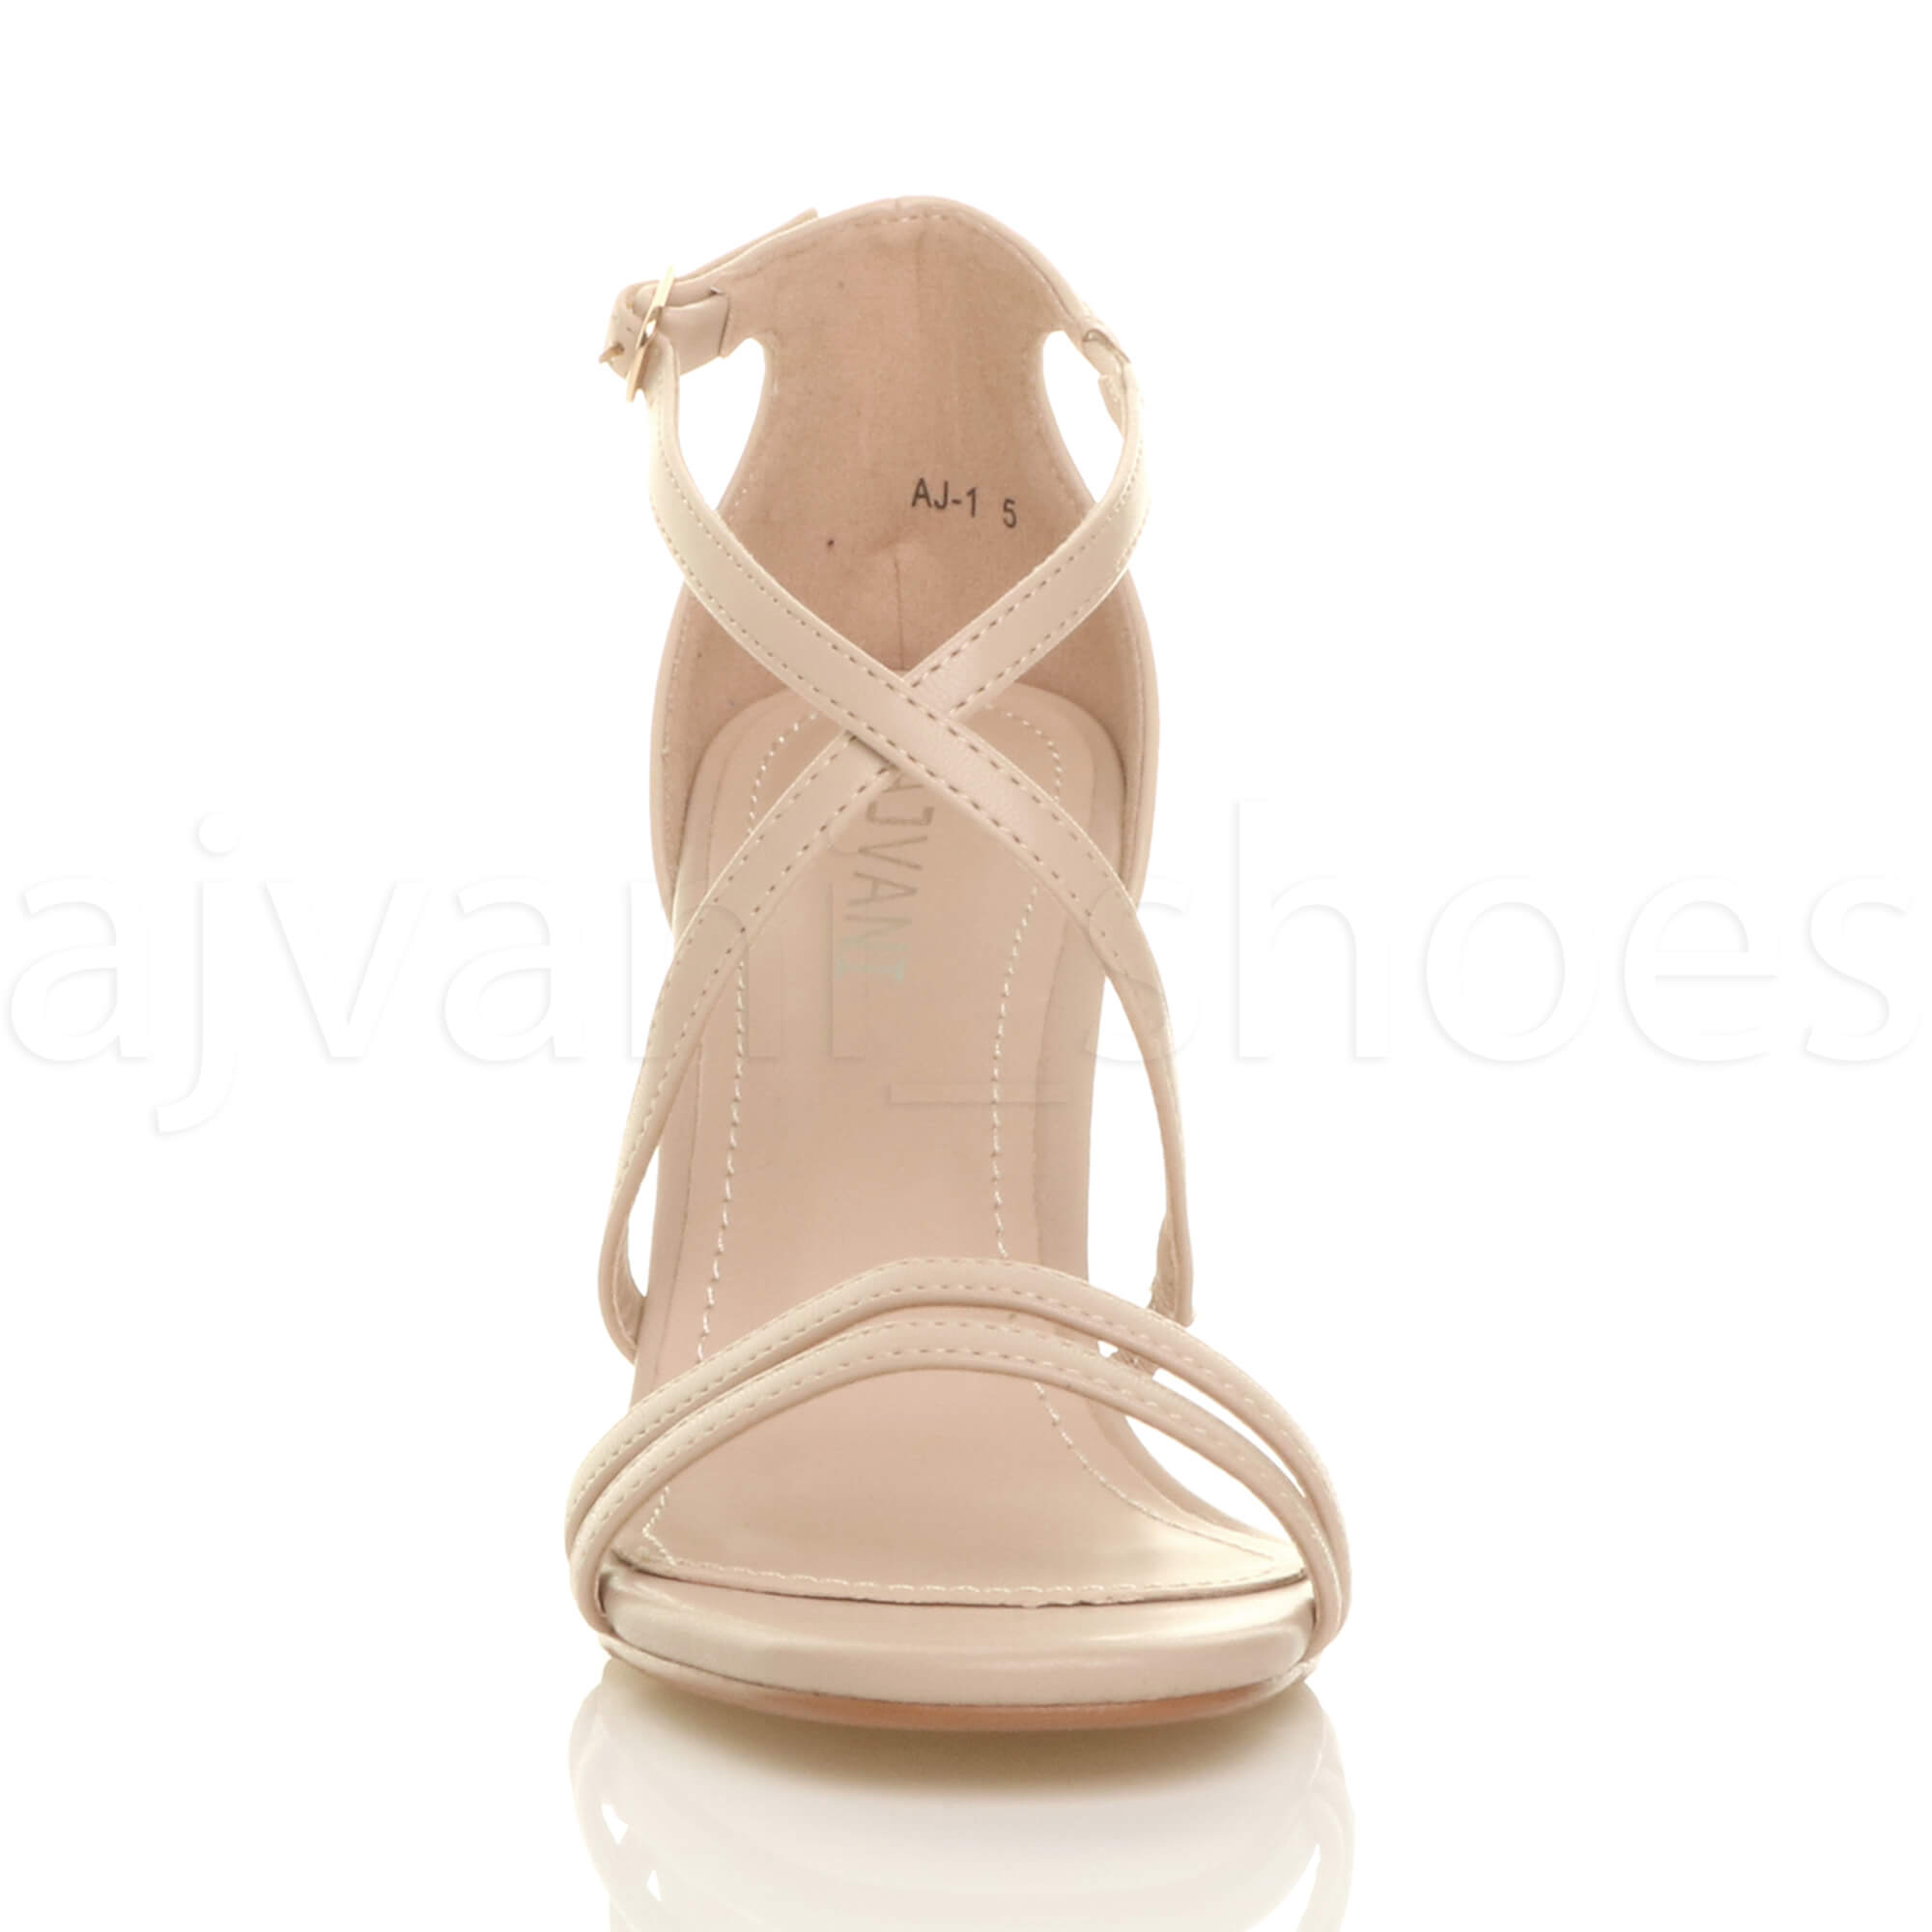 WOMENS-LADIES-MID-HIGH-HEEL-STRAPPY-CROSSOVER-WEDDING-PROM-SANDALS-SHOES-SIZE thumbnail 111